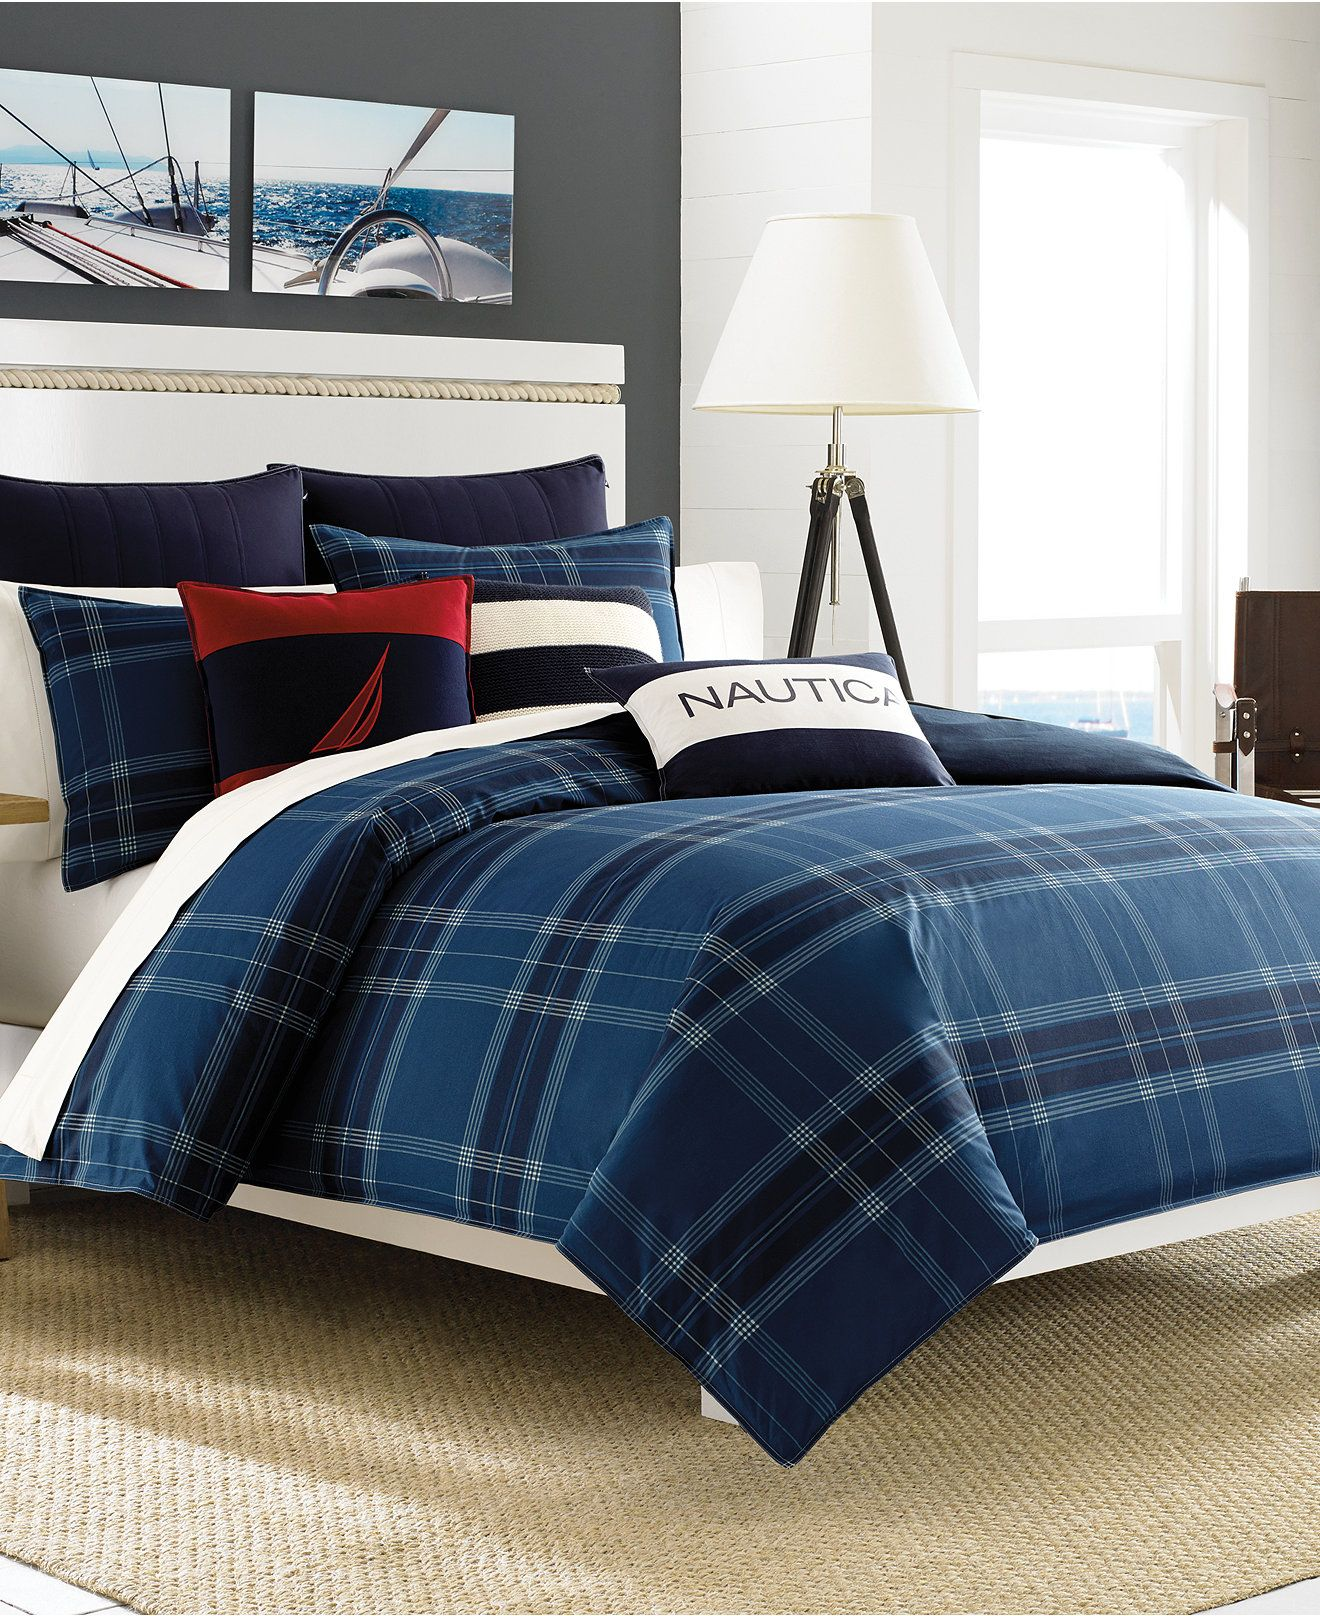 Nautica Akeley Comforter And Duvet Cover Sets   Bedding Collections   Bed U0026  Bath   Macyu0027s